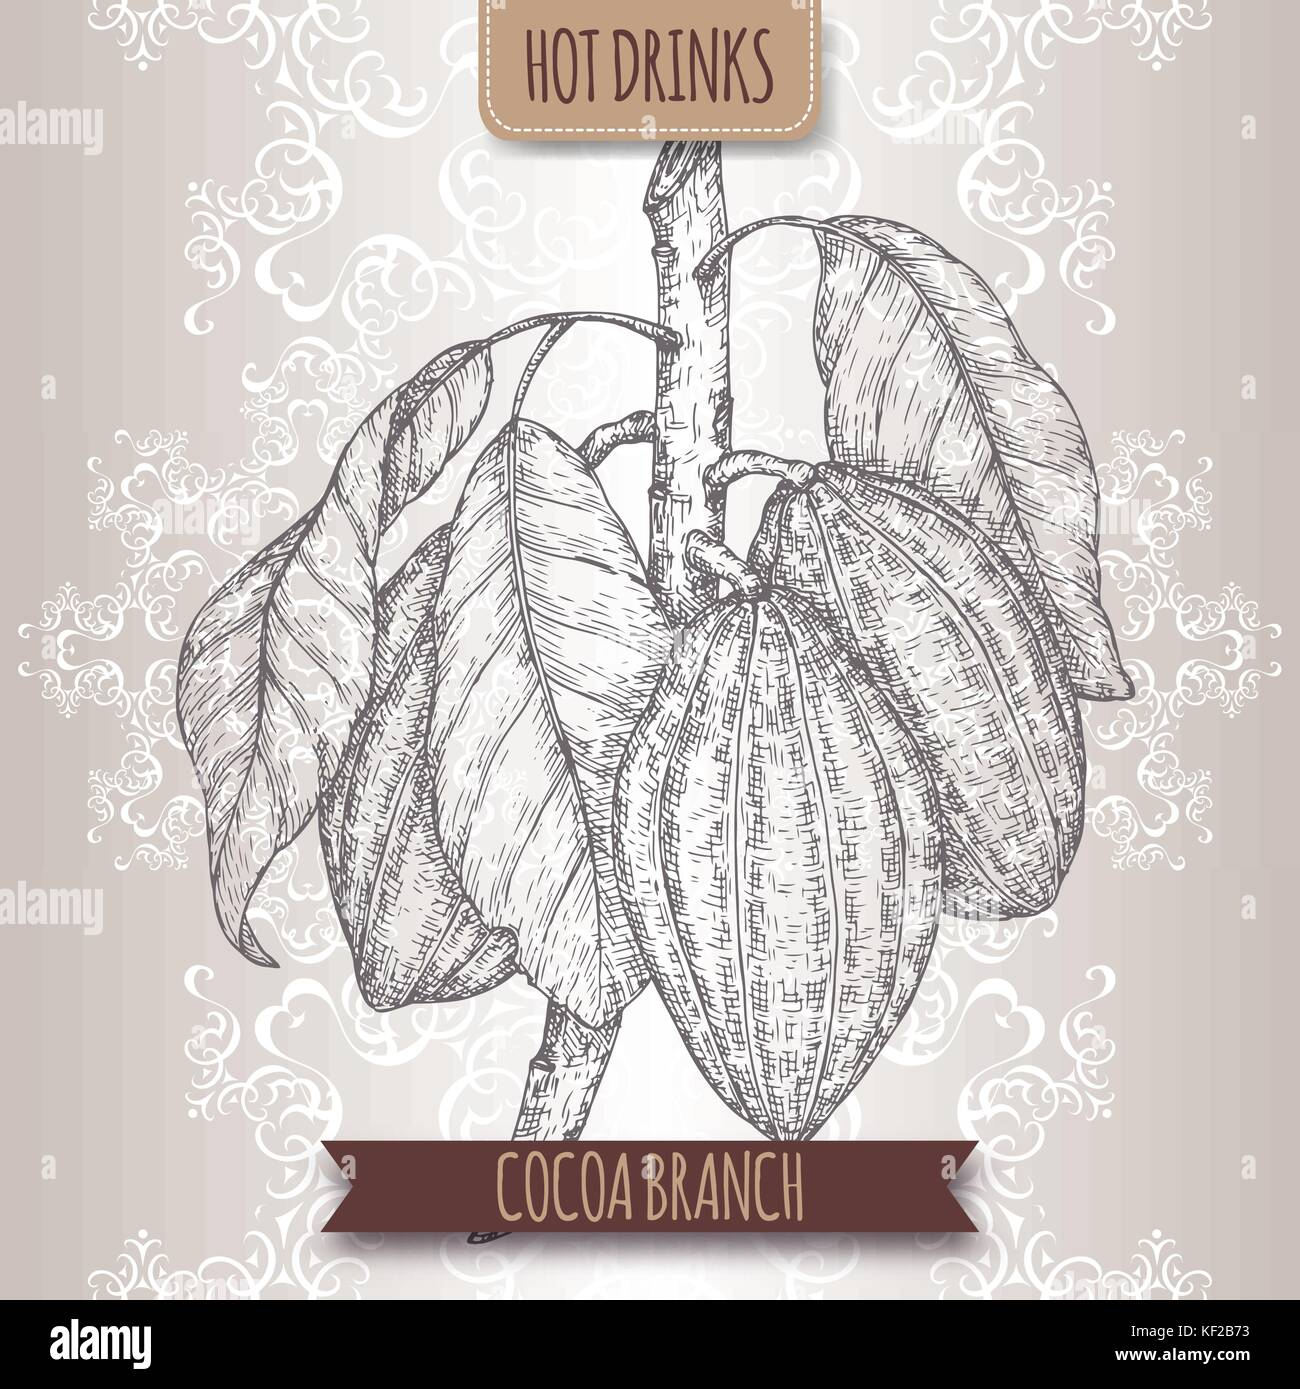 Cocoa tree aka Theobroma cacao branch sketch with leaves and beans. Hot drinks collection. - Stock Vector